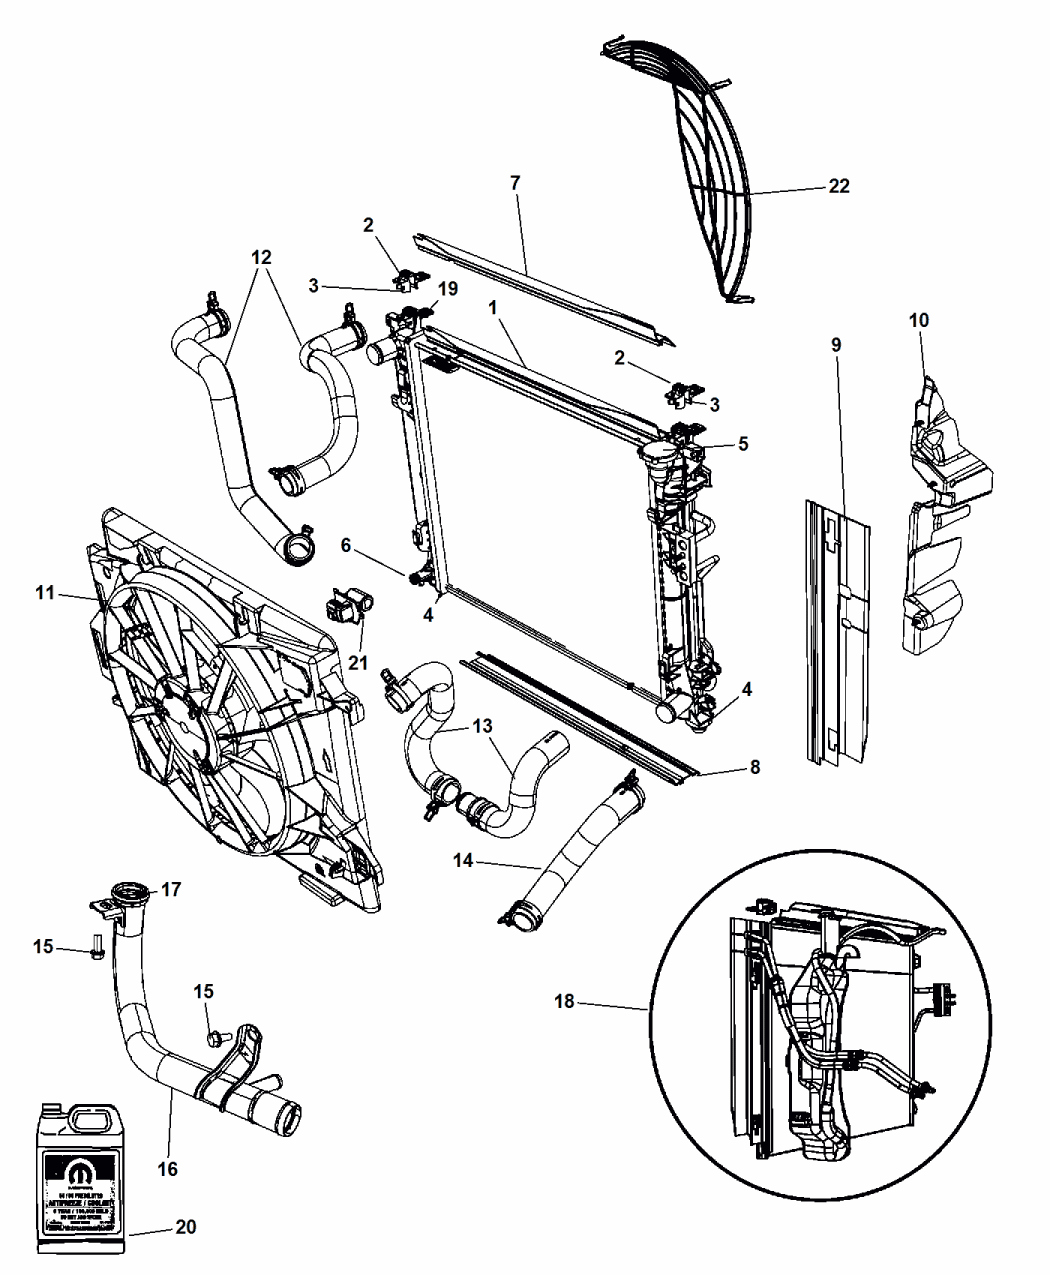 dodge neon engine parts diagram yn 4587  town and country parts diagram on chrysler town and  country parts diagram on chrysler town